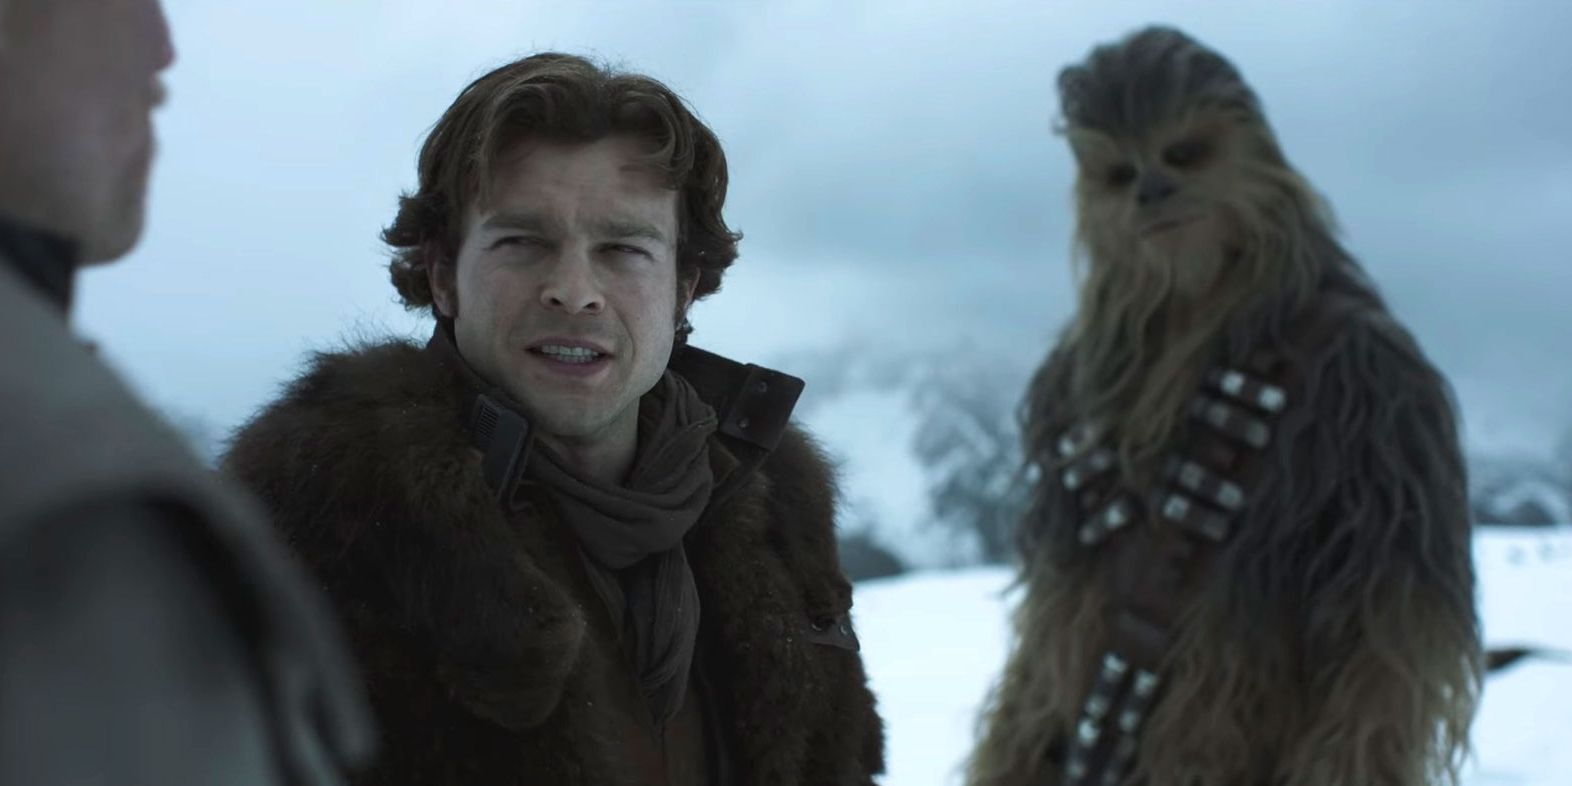 Solo: A Star Wars Movie, trailer, Han Solo, Chewbacca, Alden Enrenreich